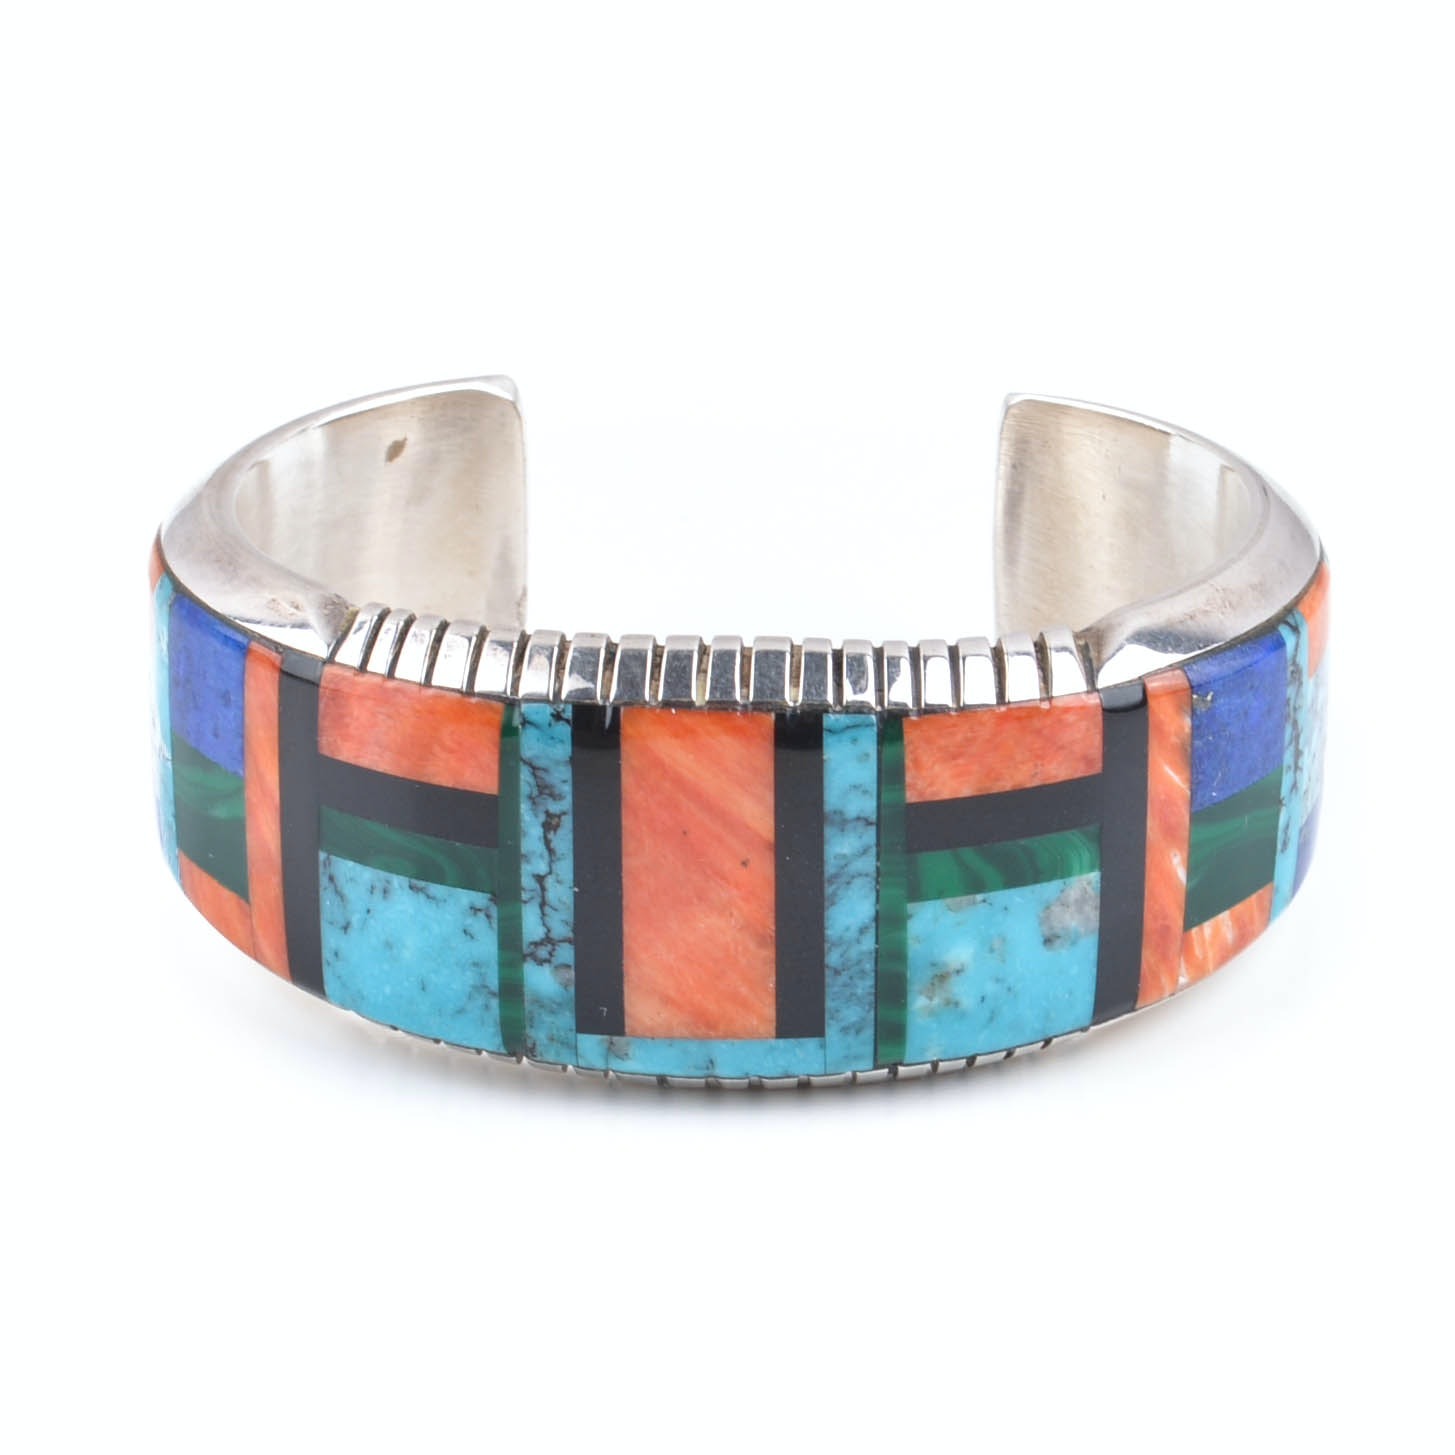 Frank Yellowhorse Navajo Sterling Silver With Inlay Cuff Bracelet